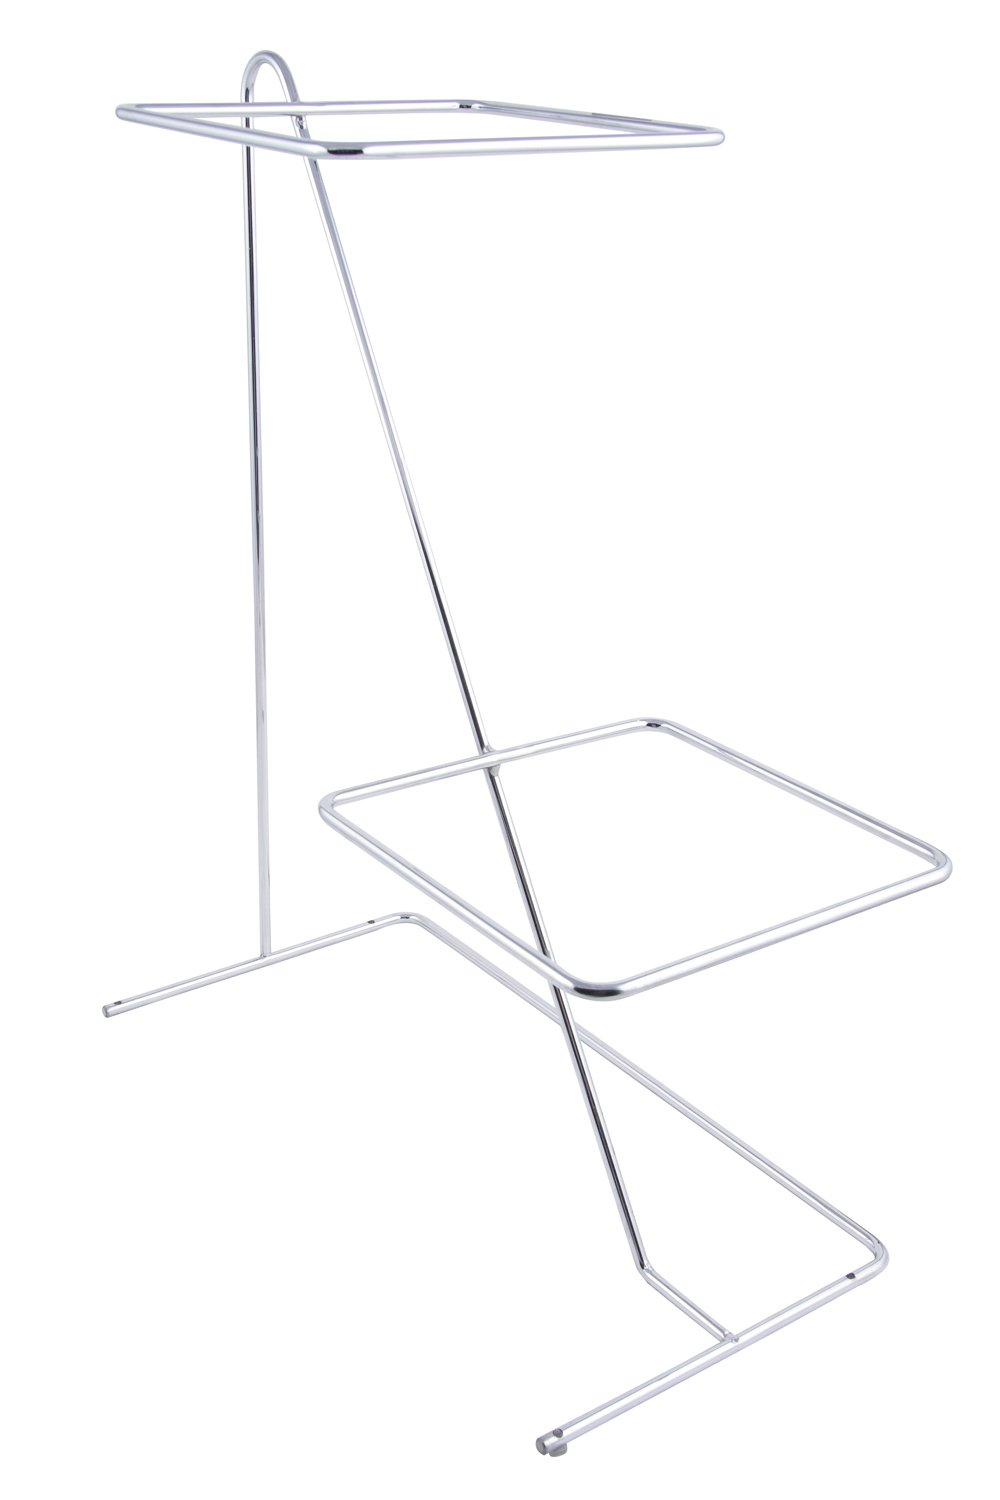 amazon bon chef 7016 stainless steel 2 tier tall stand for 2 X 12 Sill Plate amazon bon chef 7016 stainless steel 2 tier tall stand for melamine square bowl 9 3 4 length x 18 3 4 width x 23 1 2 height industrial